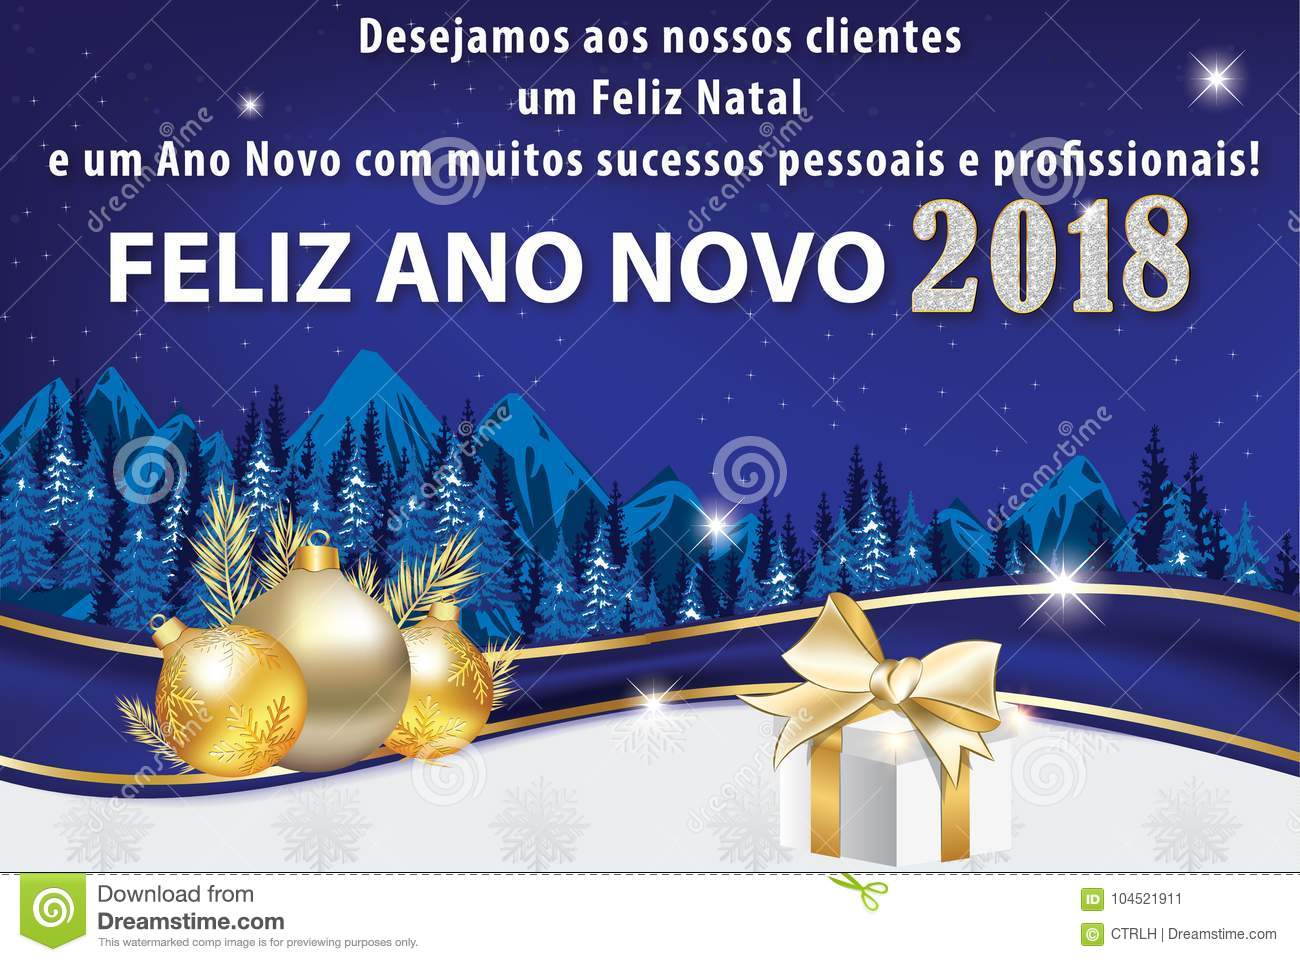 Corporate Holiday Season Greeting Card Designed For Portuguese